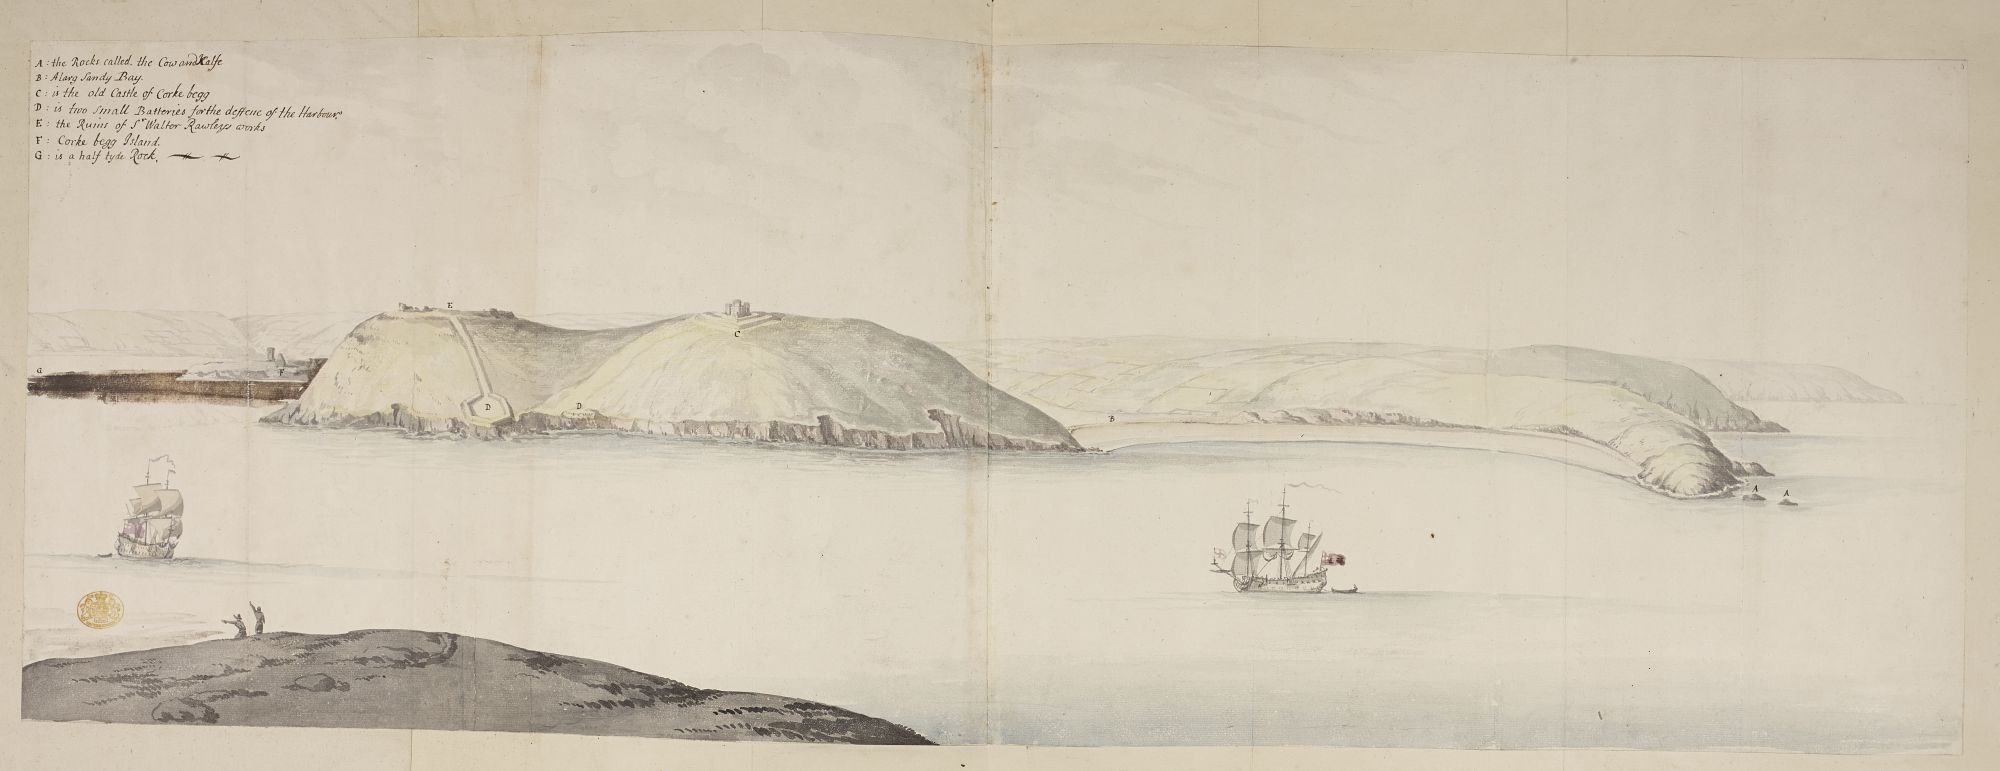 West Entrance Of Cork Harbour British Library Picturing Places The